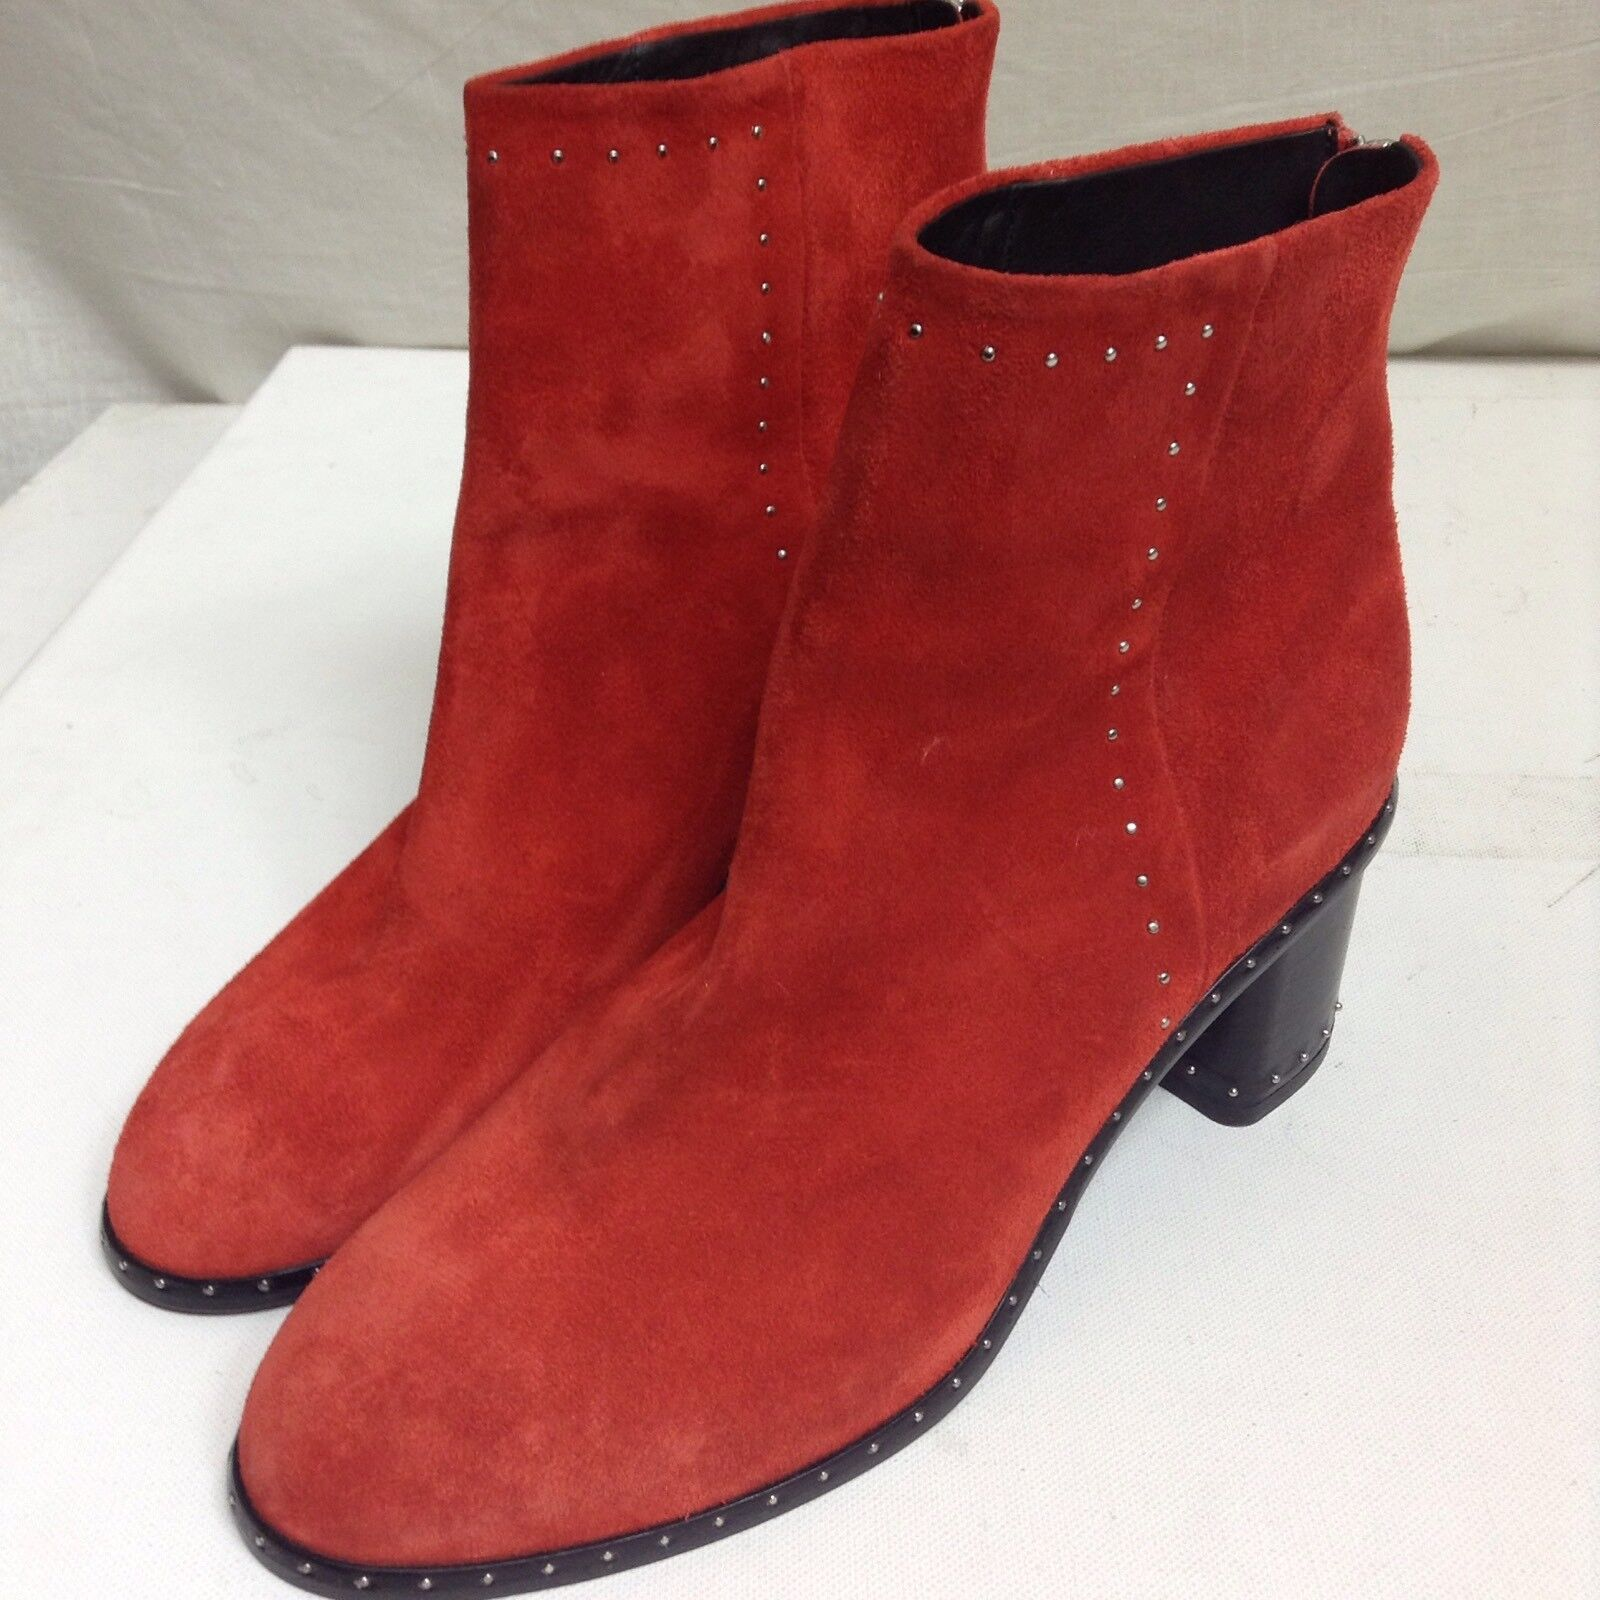 Rag & Bone Nefer Studded Suede Ankle Boots, Red 39 US 9